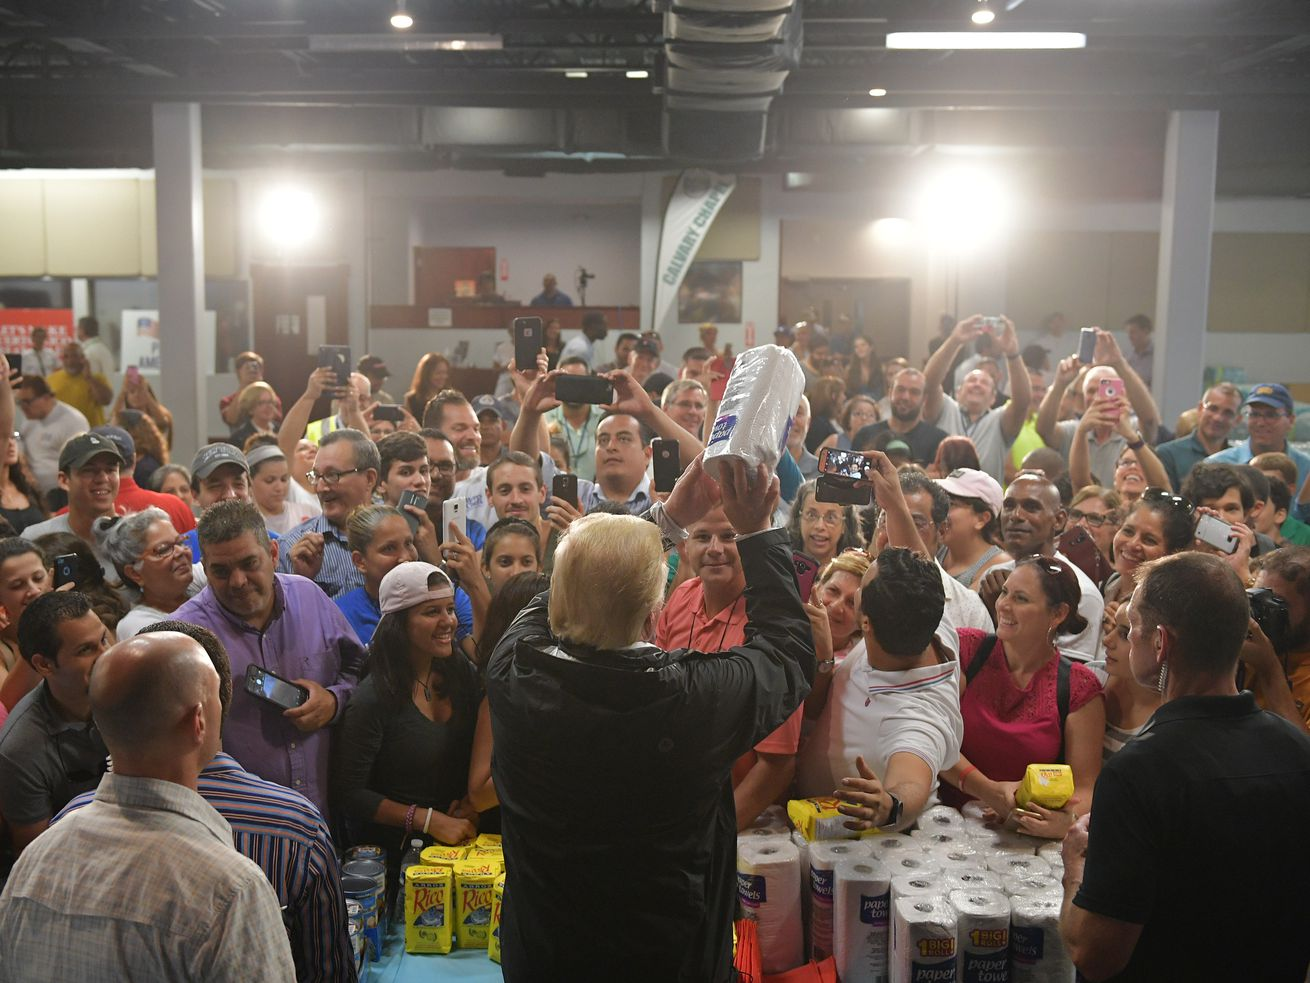 Trump tossing paper towels into a crowd in Puerto Rico.